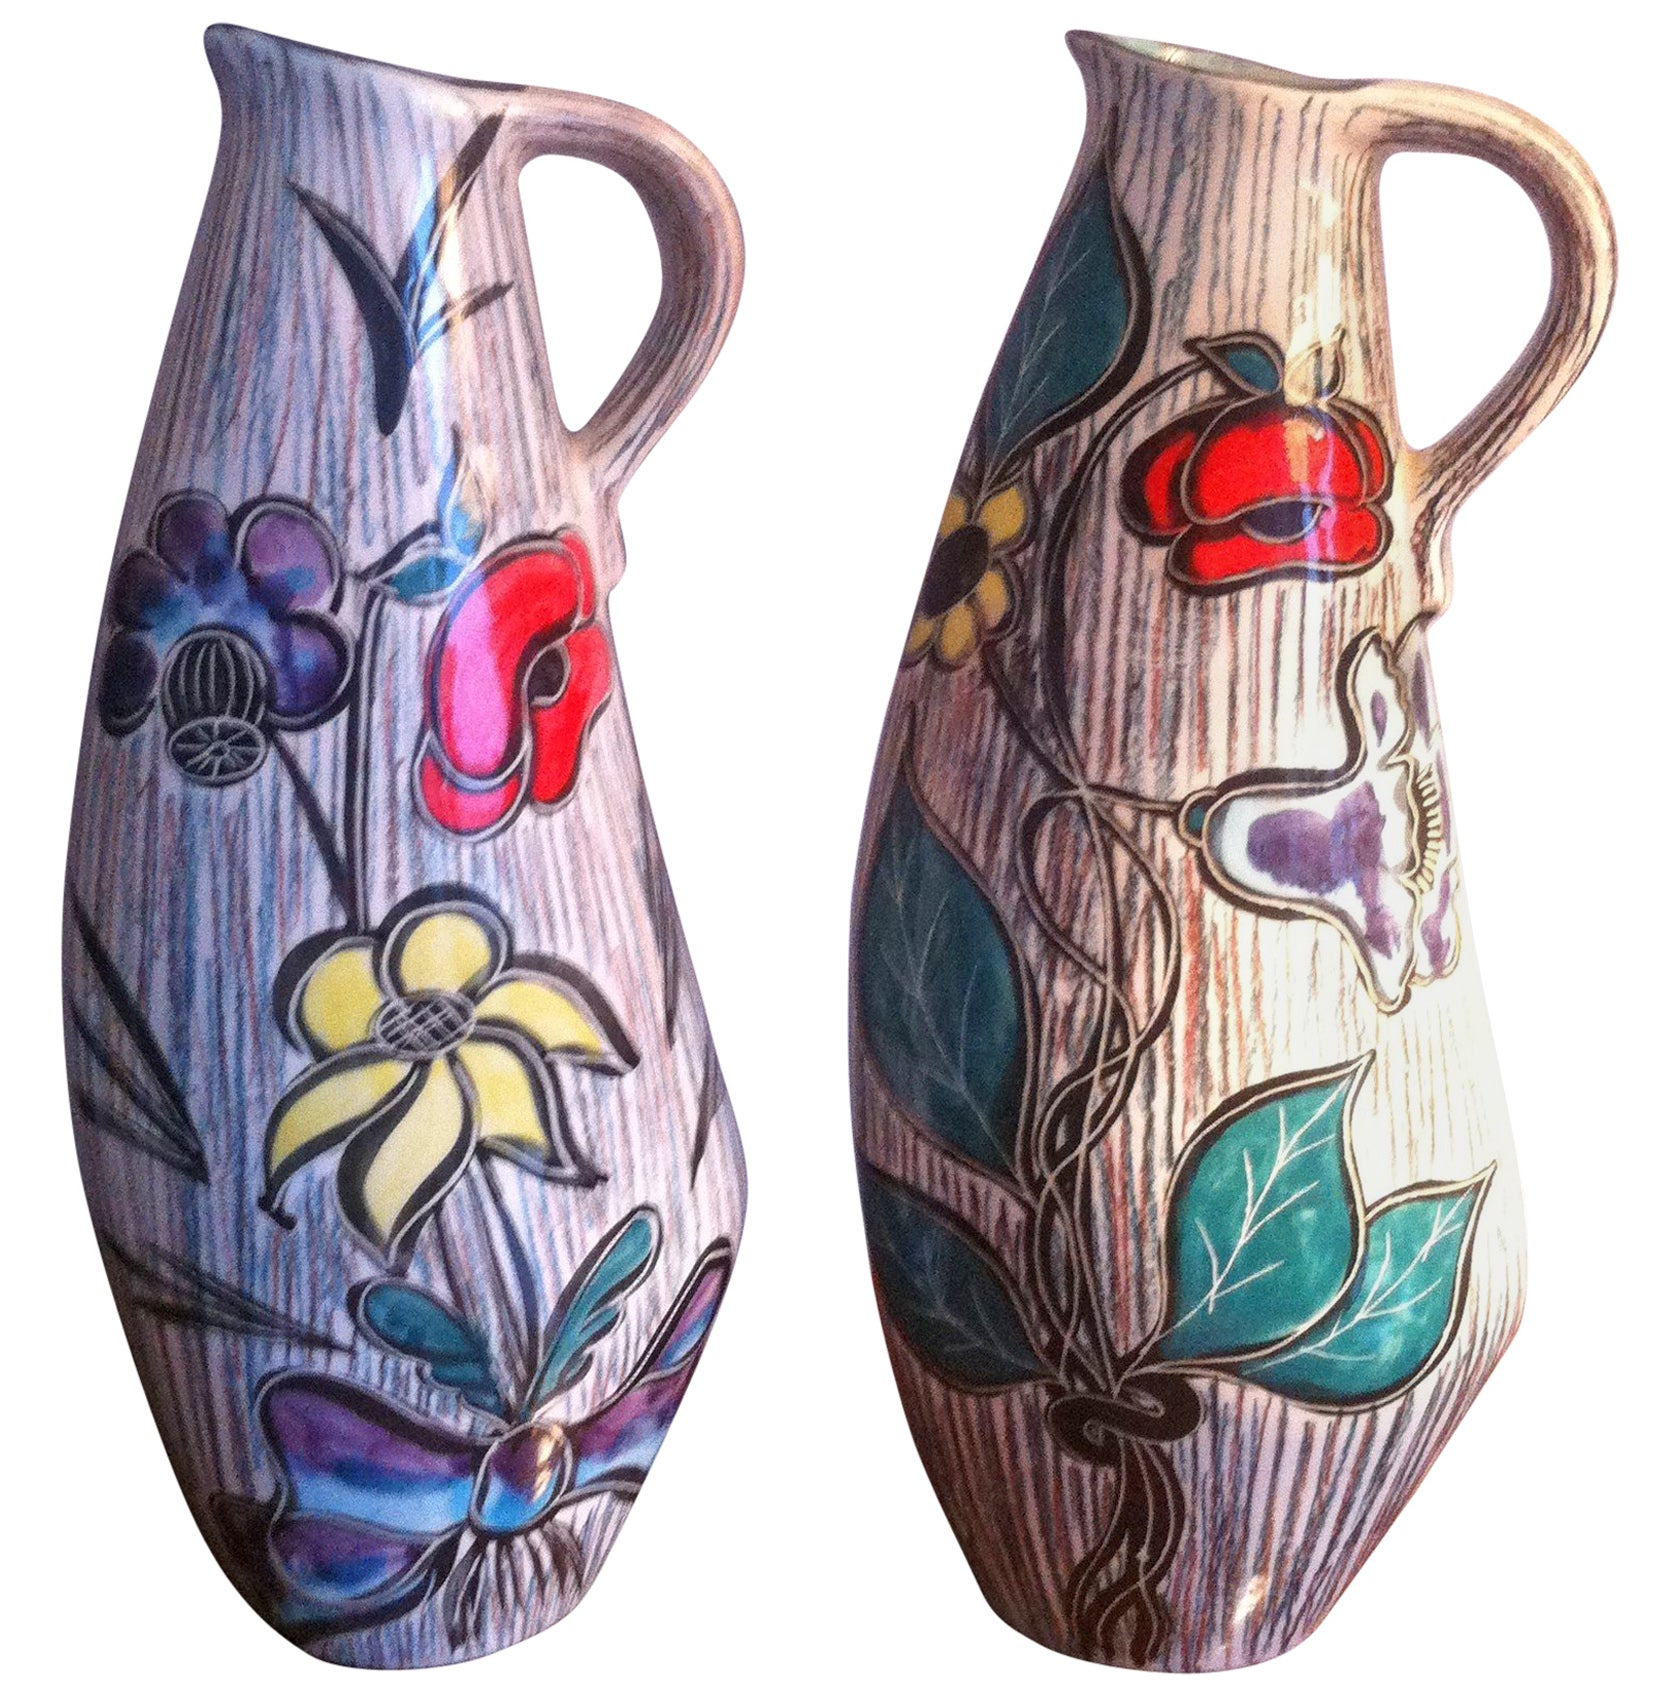 Vallauris Pair of Ceramic French Pitchers Vase, France 1950